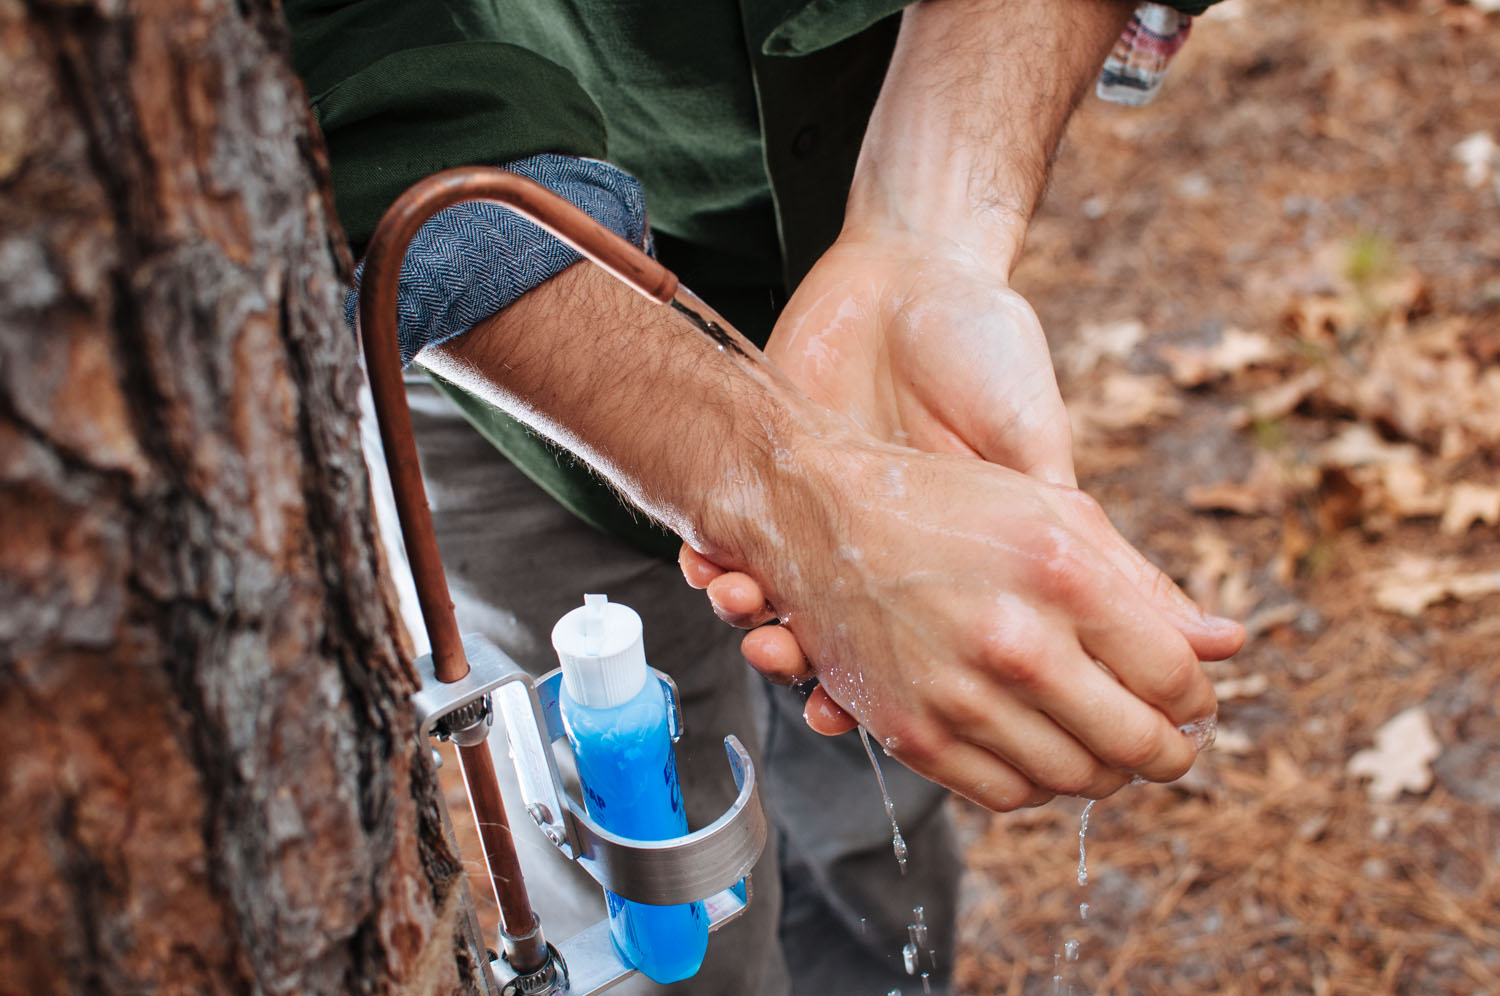 Advanced Hand Wash System Camp Trend